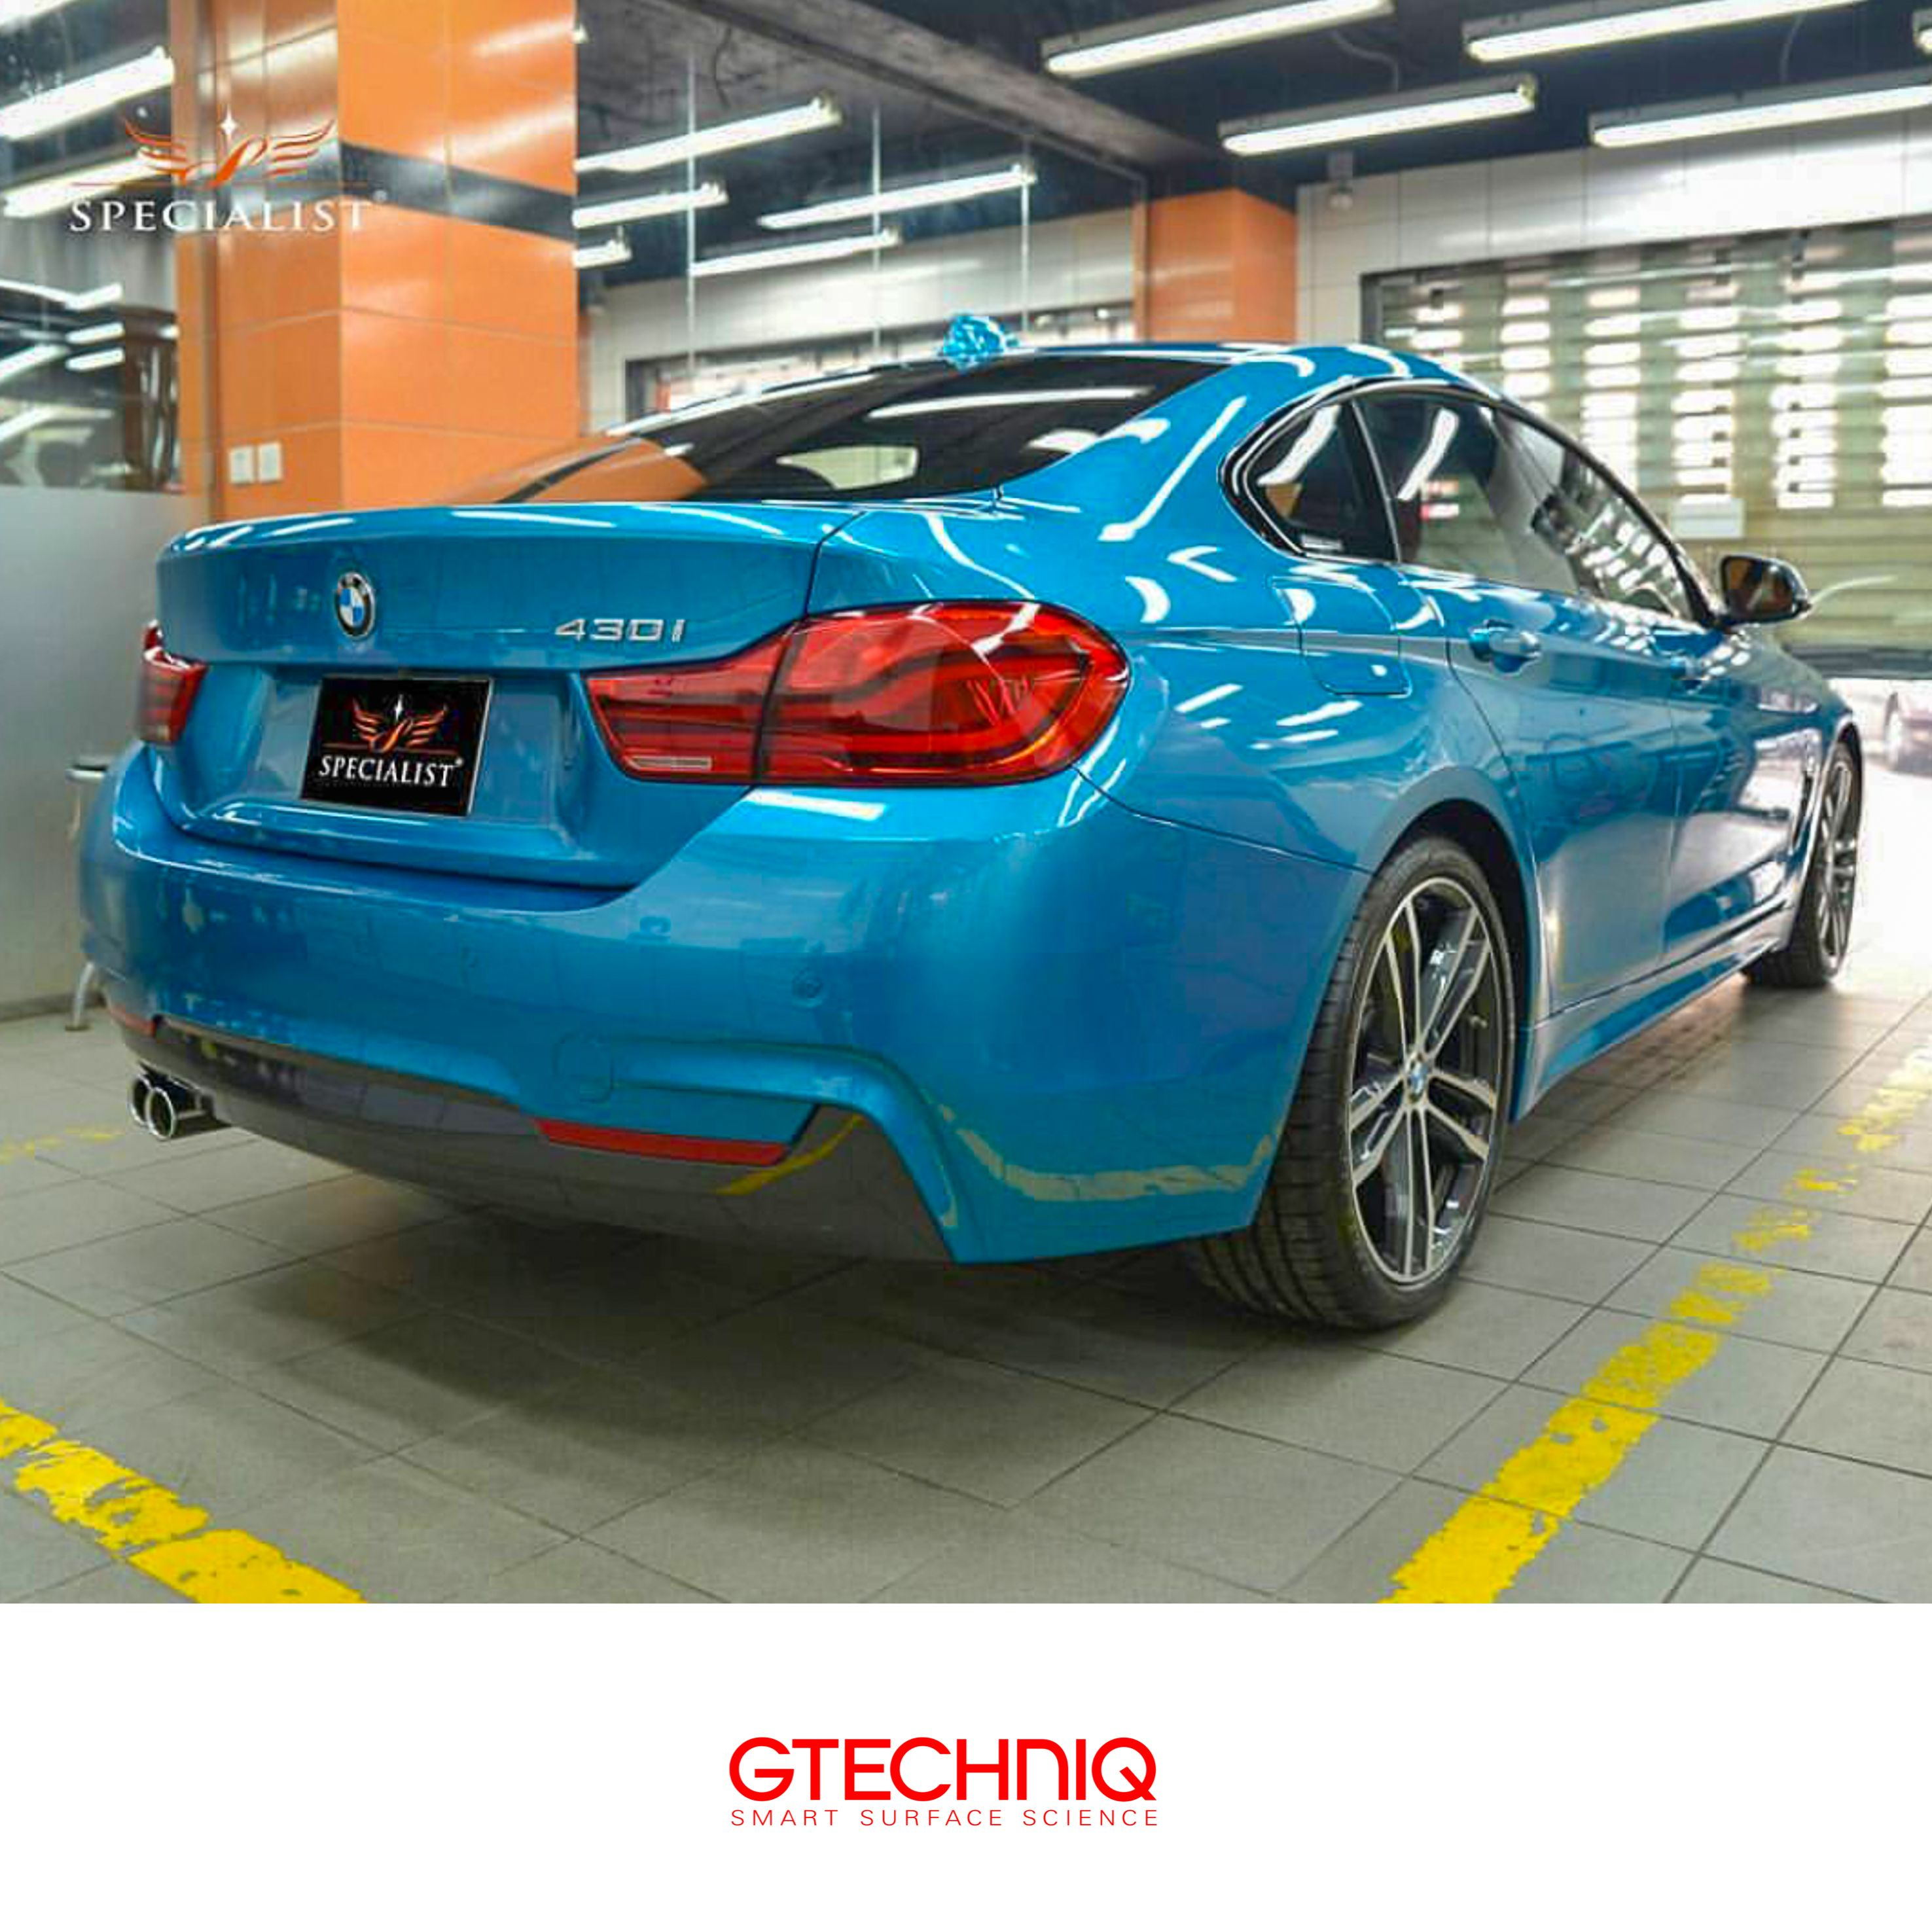 Idea By Gtechniq Middle East On Luxury, Sport And